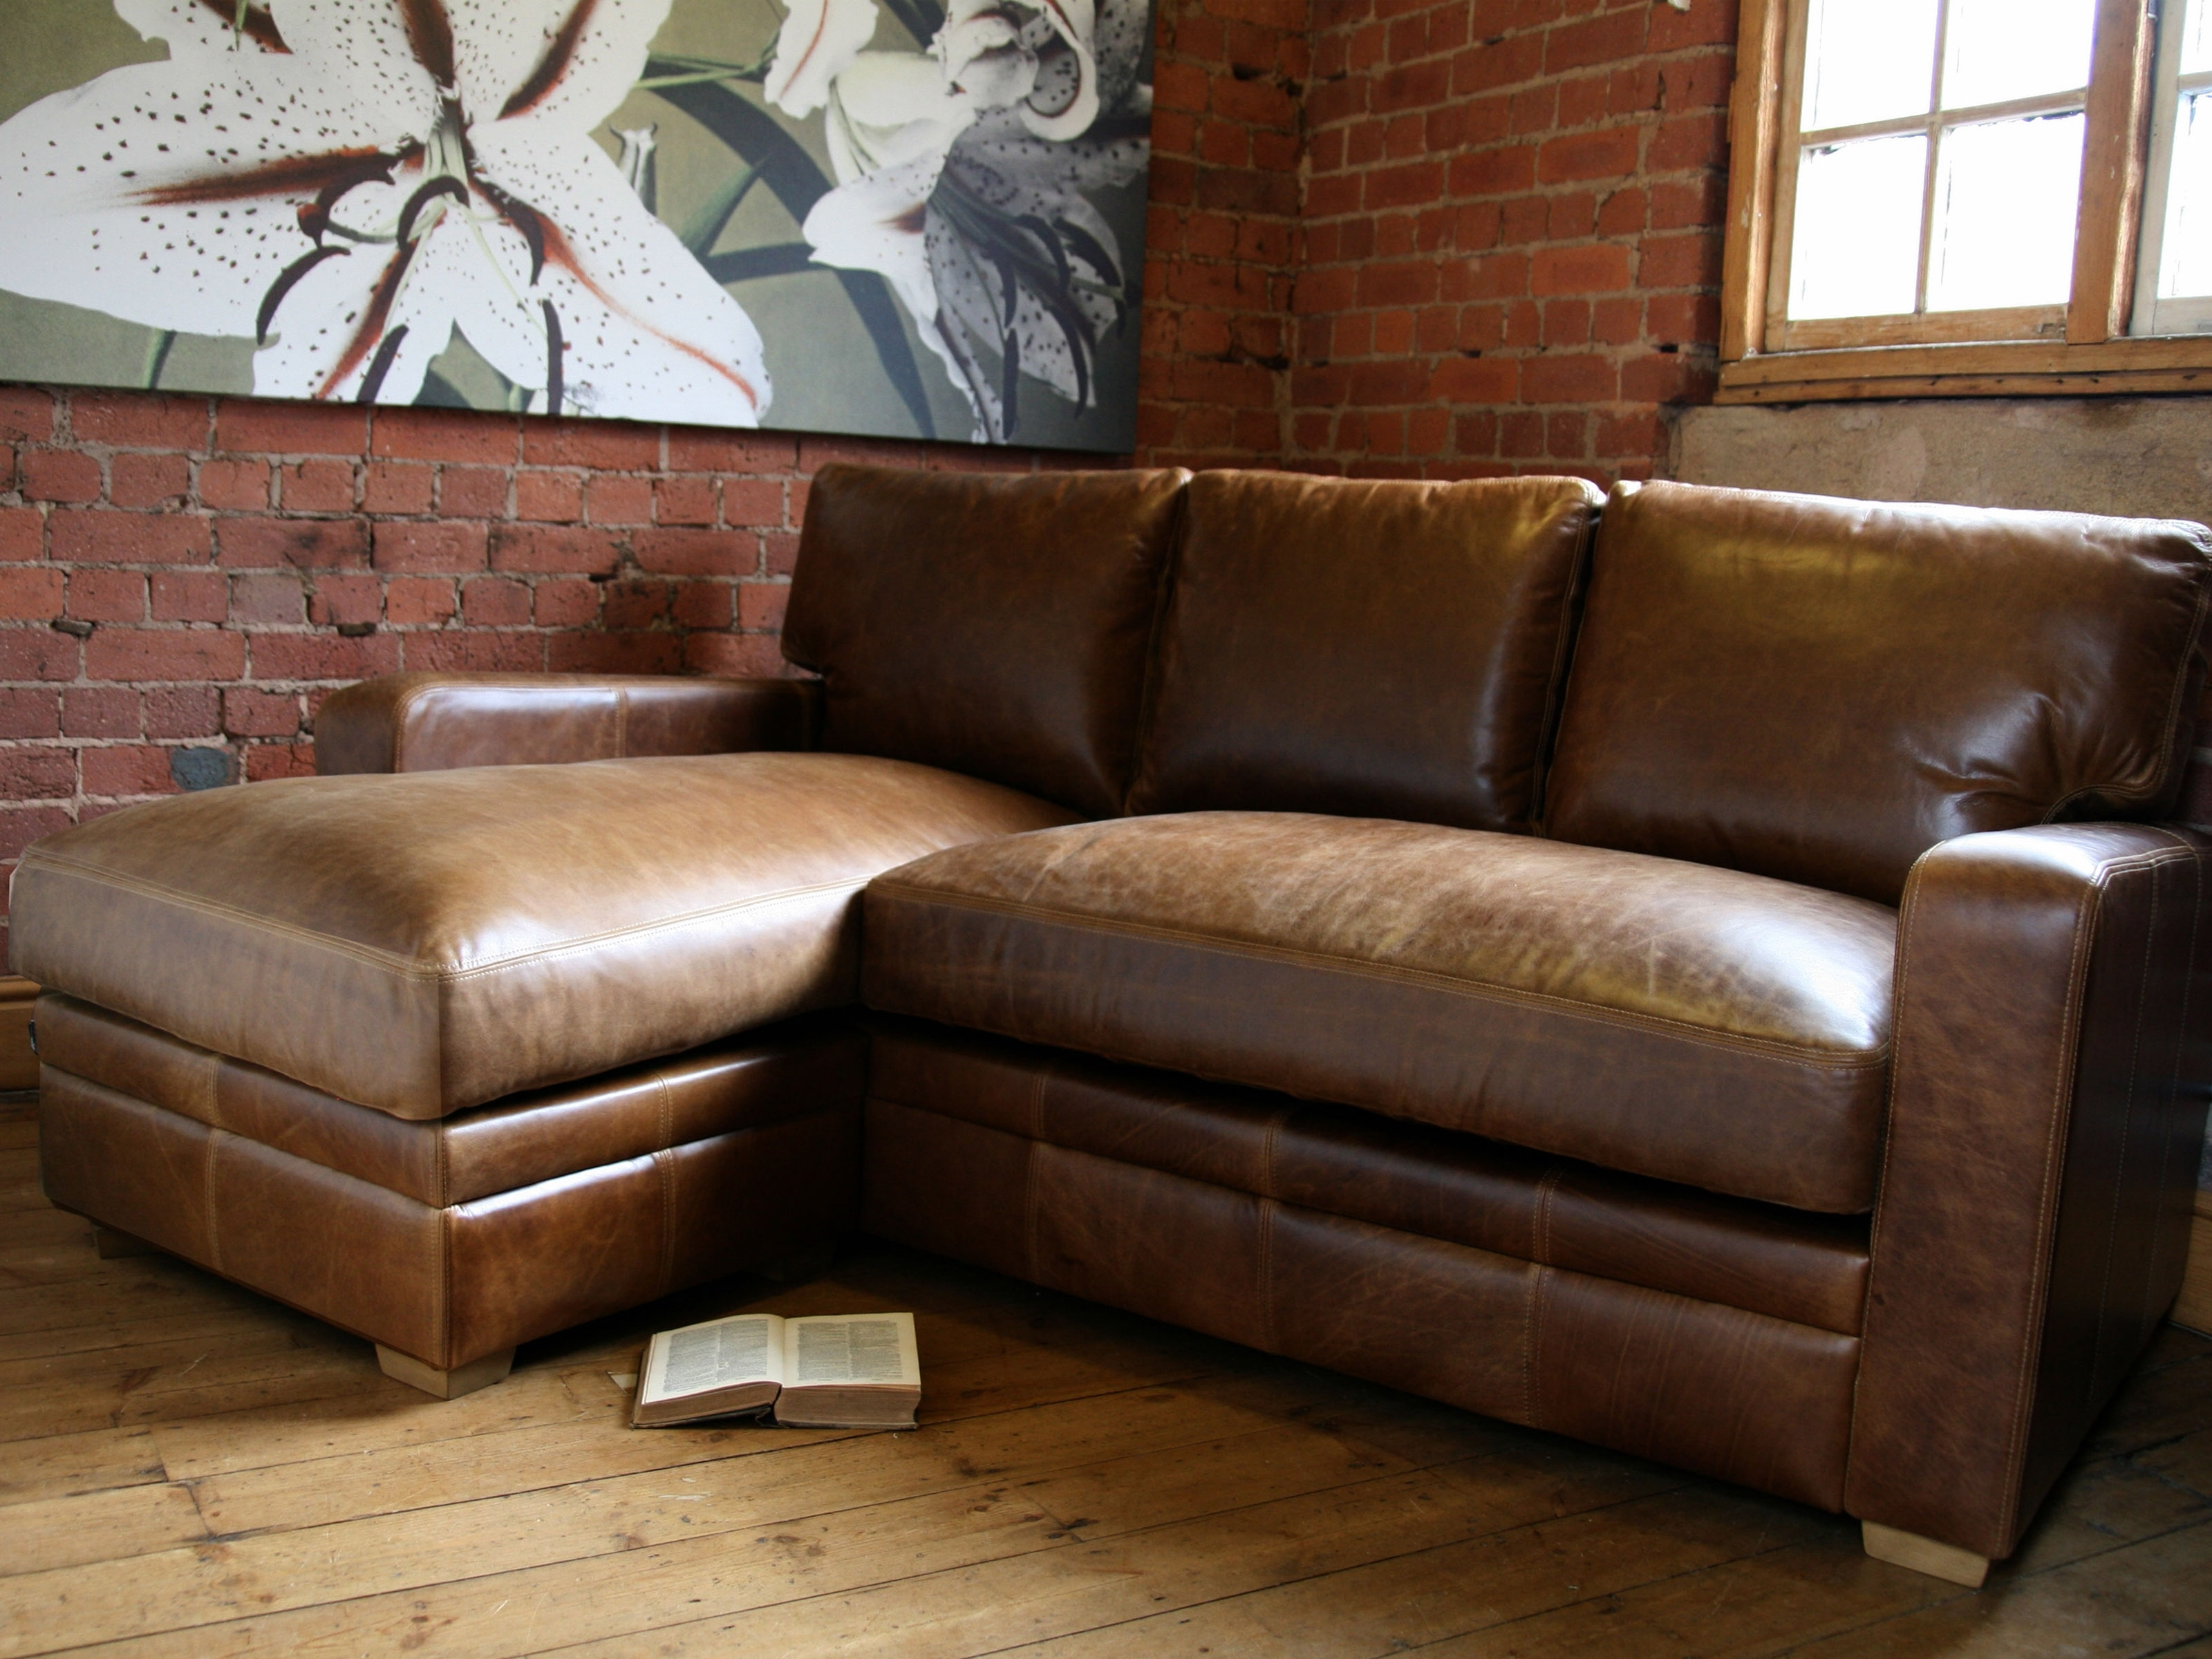 Nz Sectional Sofas With Regard To Popular Sofa : Leather Chaise Sofa Nz Dexter Leather Chaise Sofa Faux (View 3 of 15)